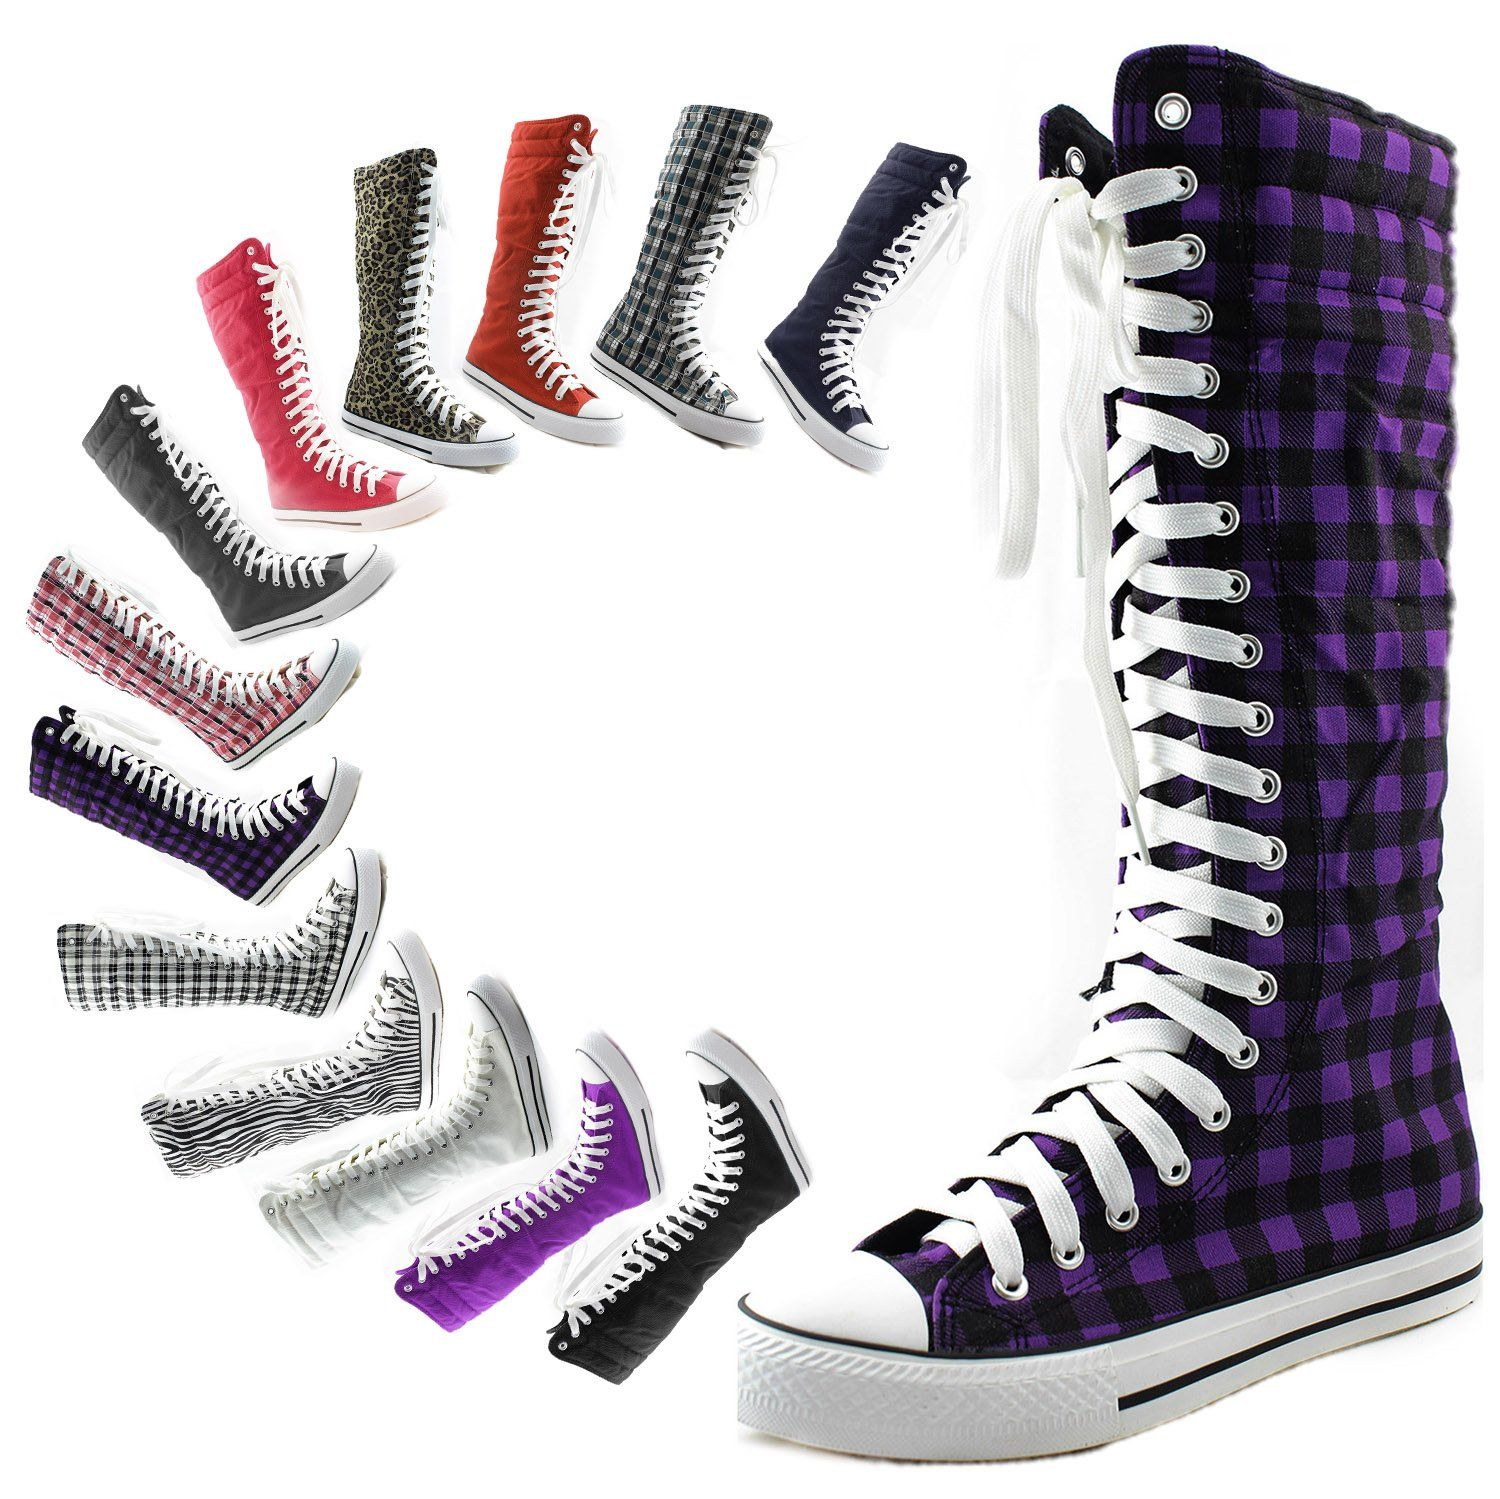 623a92cc9c0c Amazon.com  Women s Tall Canvas Lace up Punk Sneaker Flat Mid Calf Knee High  Boots  Clothing